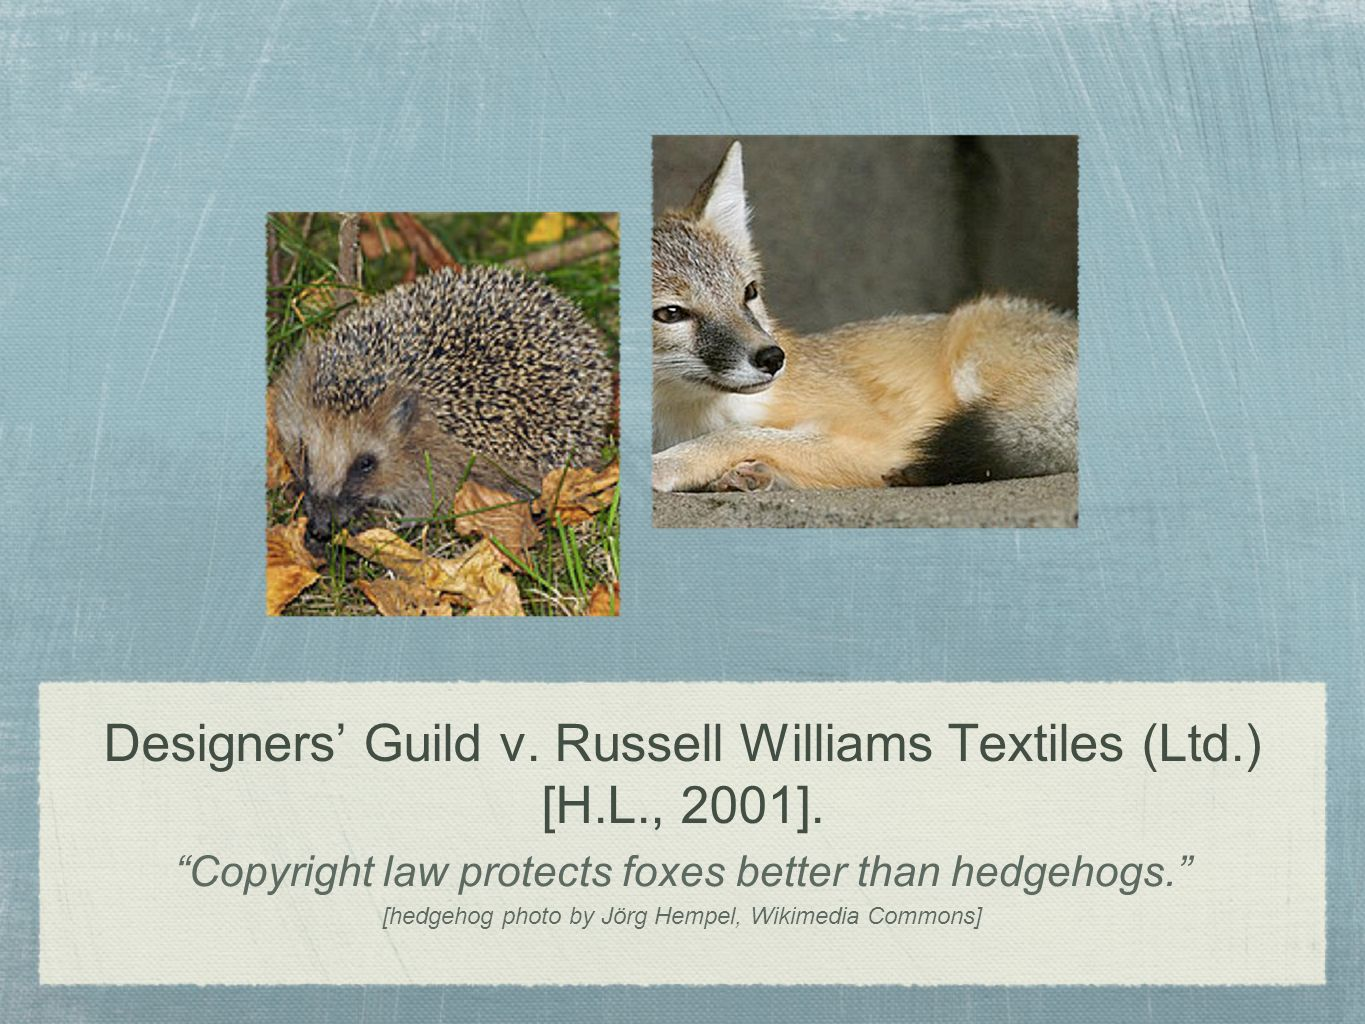 Designers' Guild v. Russell Williams Textiles (Ltd.) [H.L., 2001].